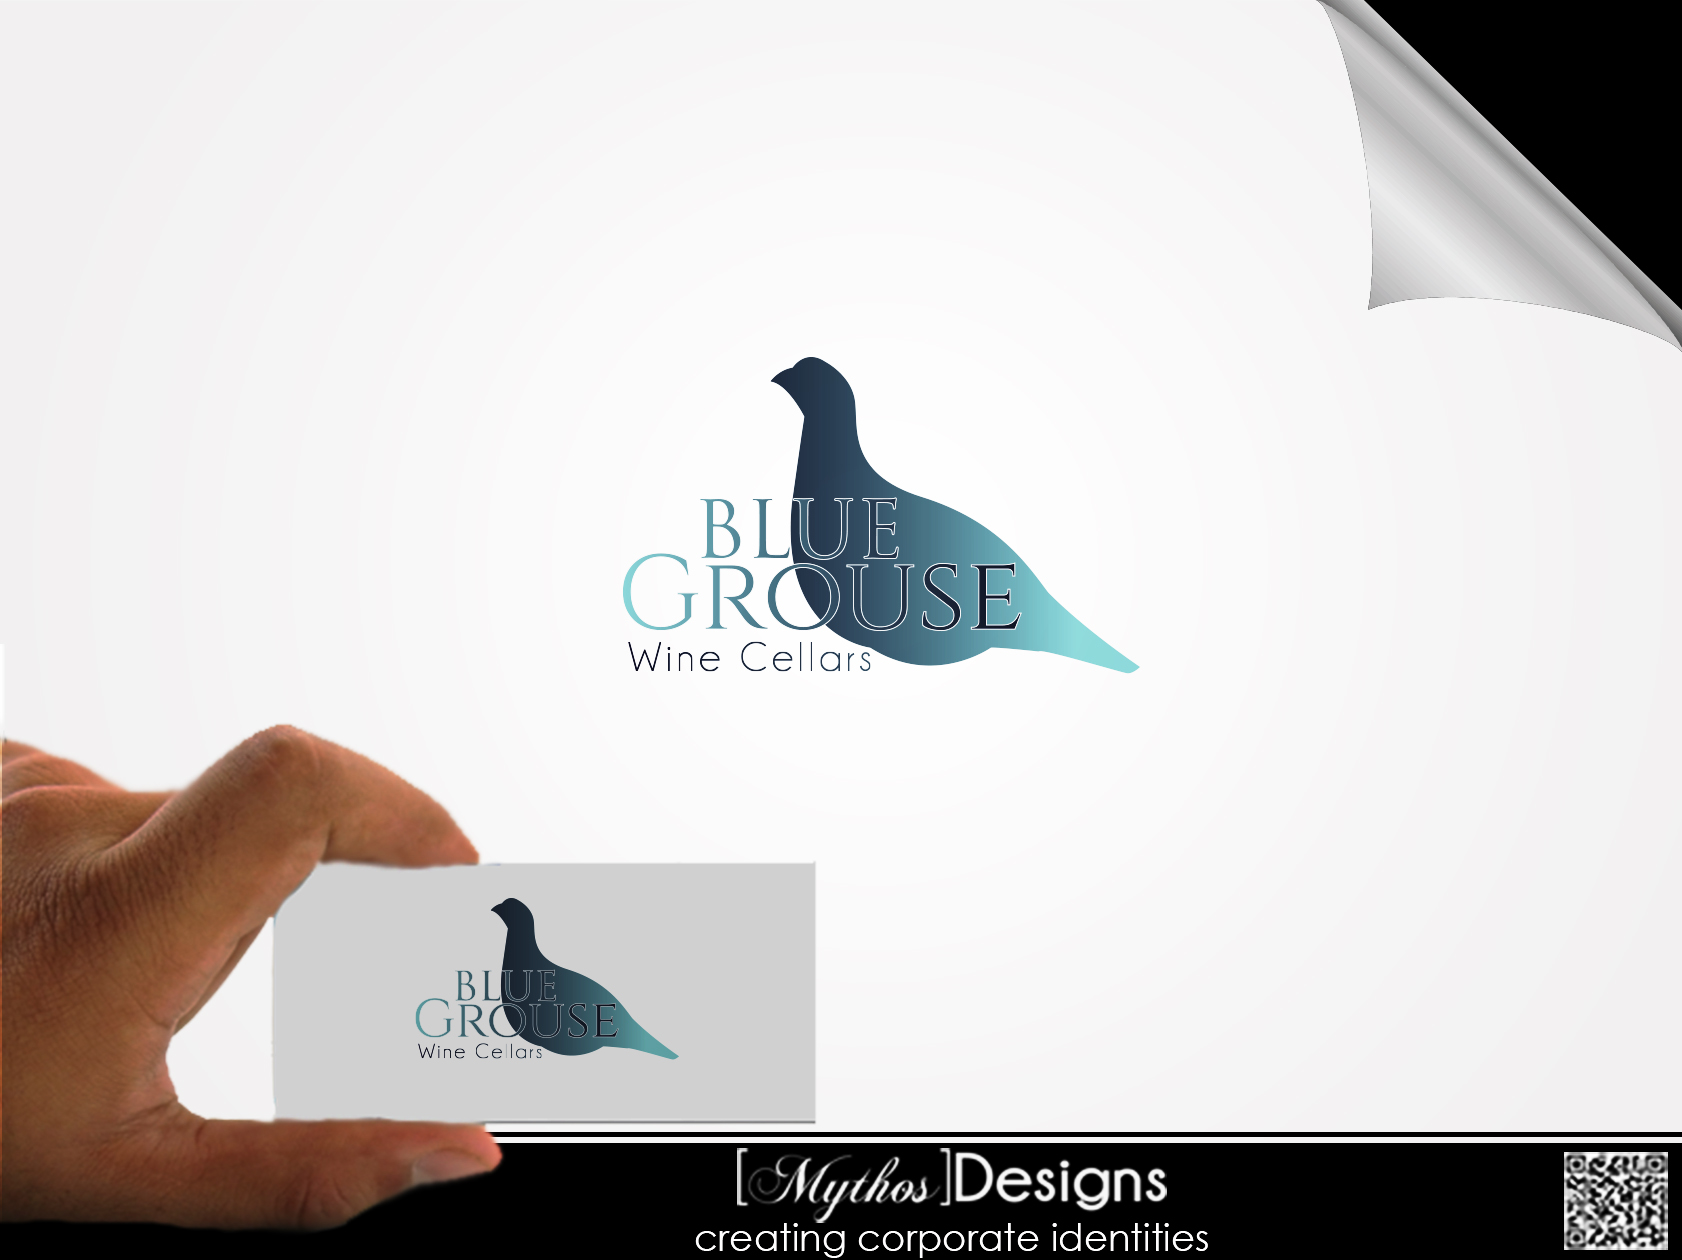 Logo Design by Mythos Designs - Entry No. 168 in the Logo Design Contest Creative Logo Design for Blue Grouse Wine Cellars.